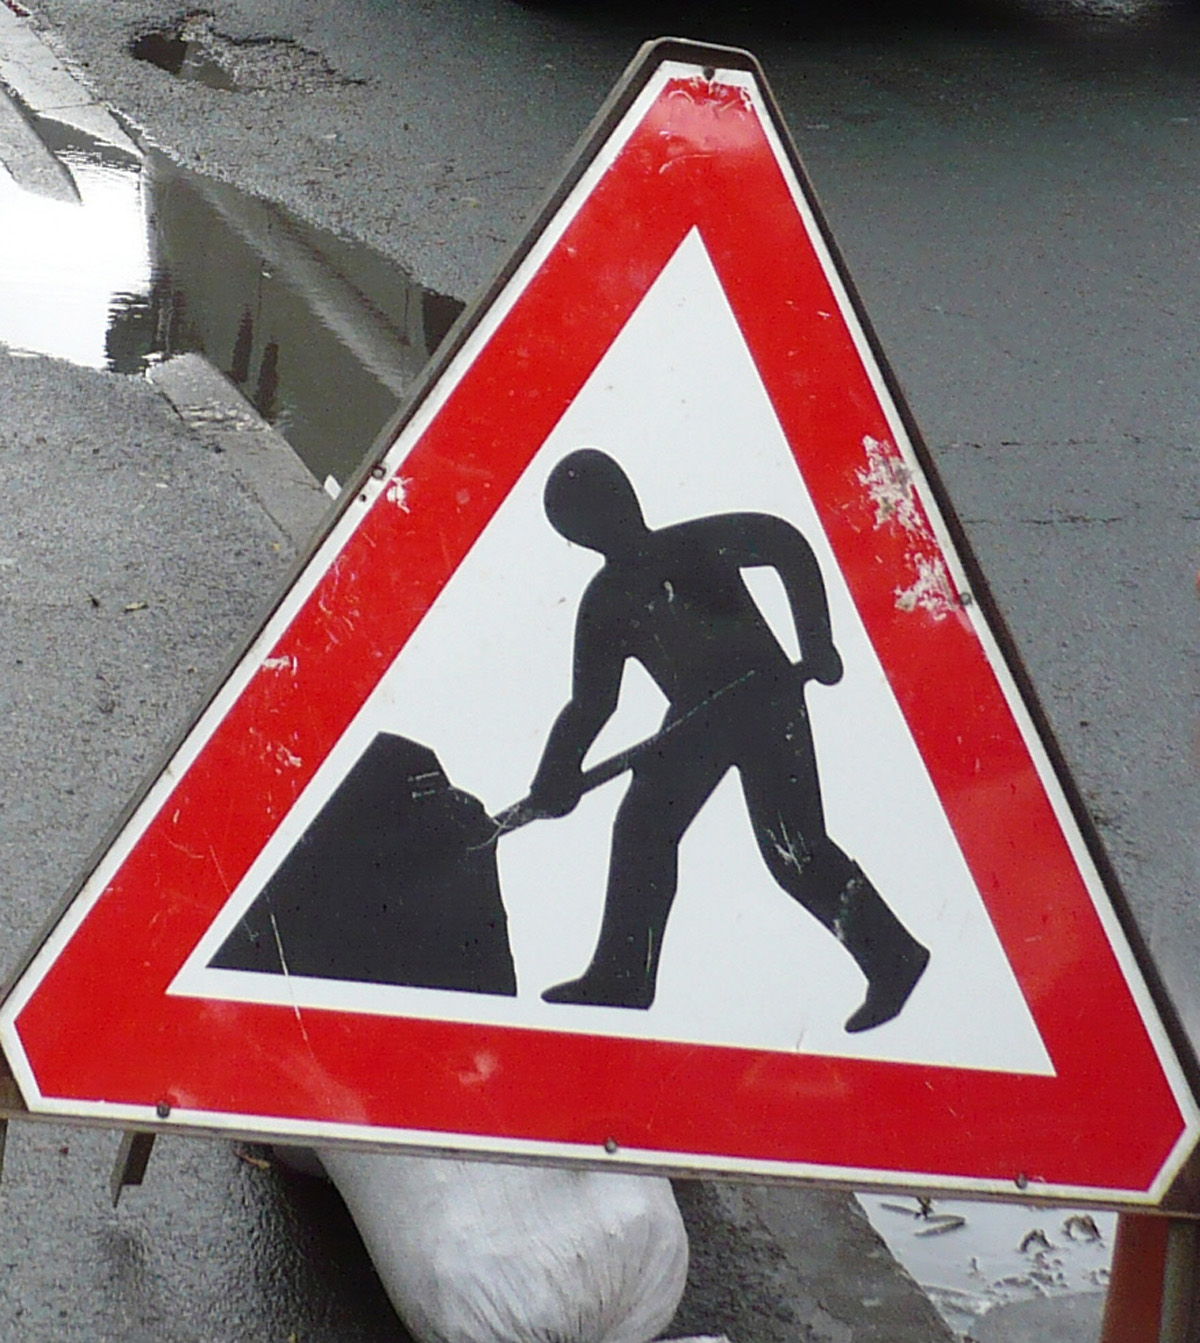 Roadworks are due to start on Monday